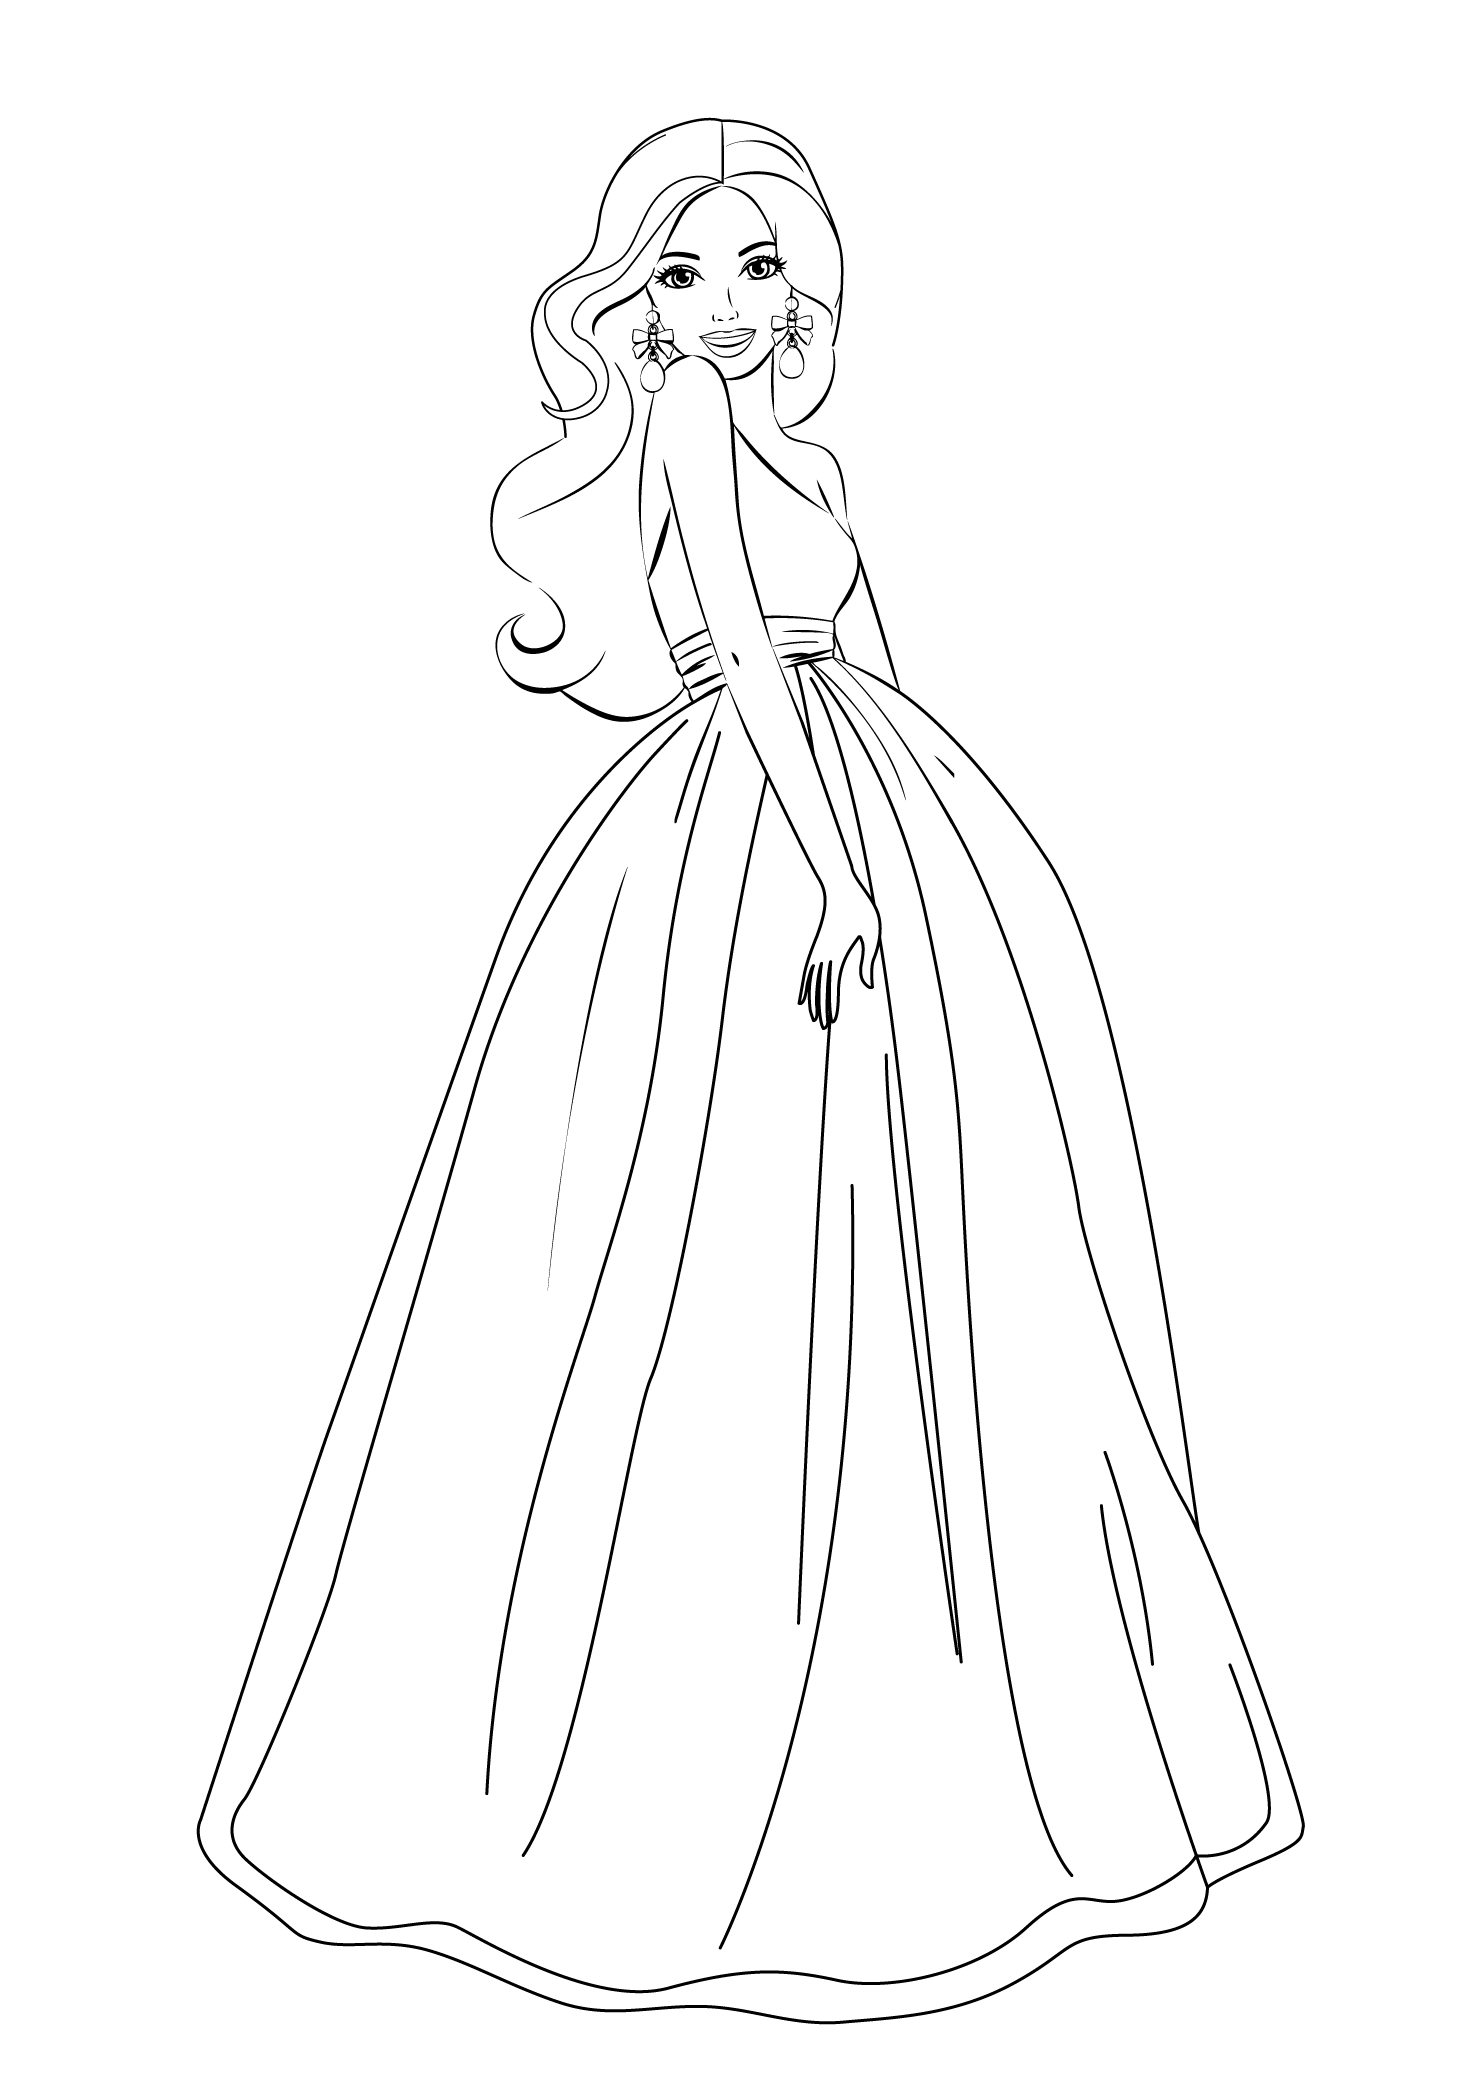 Barbie Coloring Pages For Girls Free Printable Barbie Coloring Pages Barbie Coloring Coloring Pages For Girls